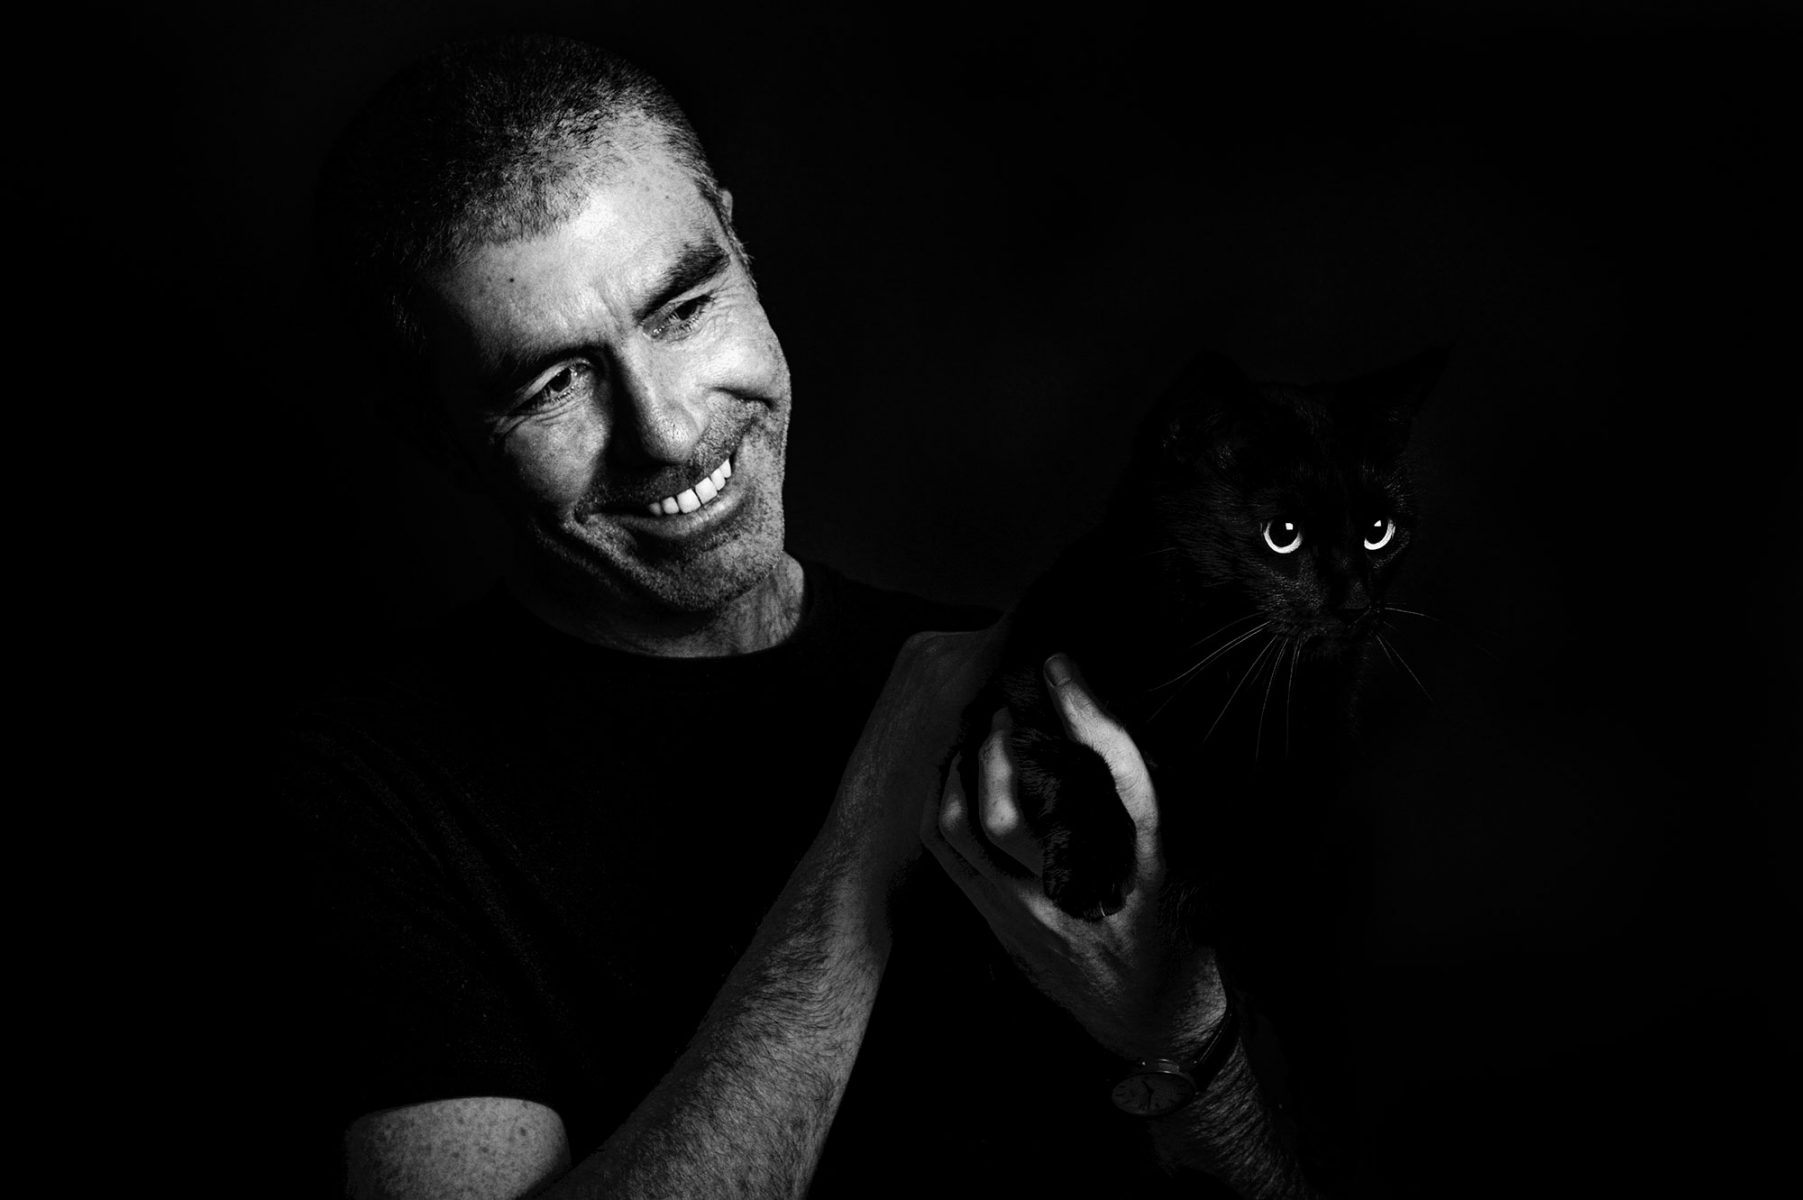 Self portrait of James Robertshaw holding his cat